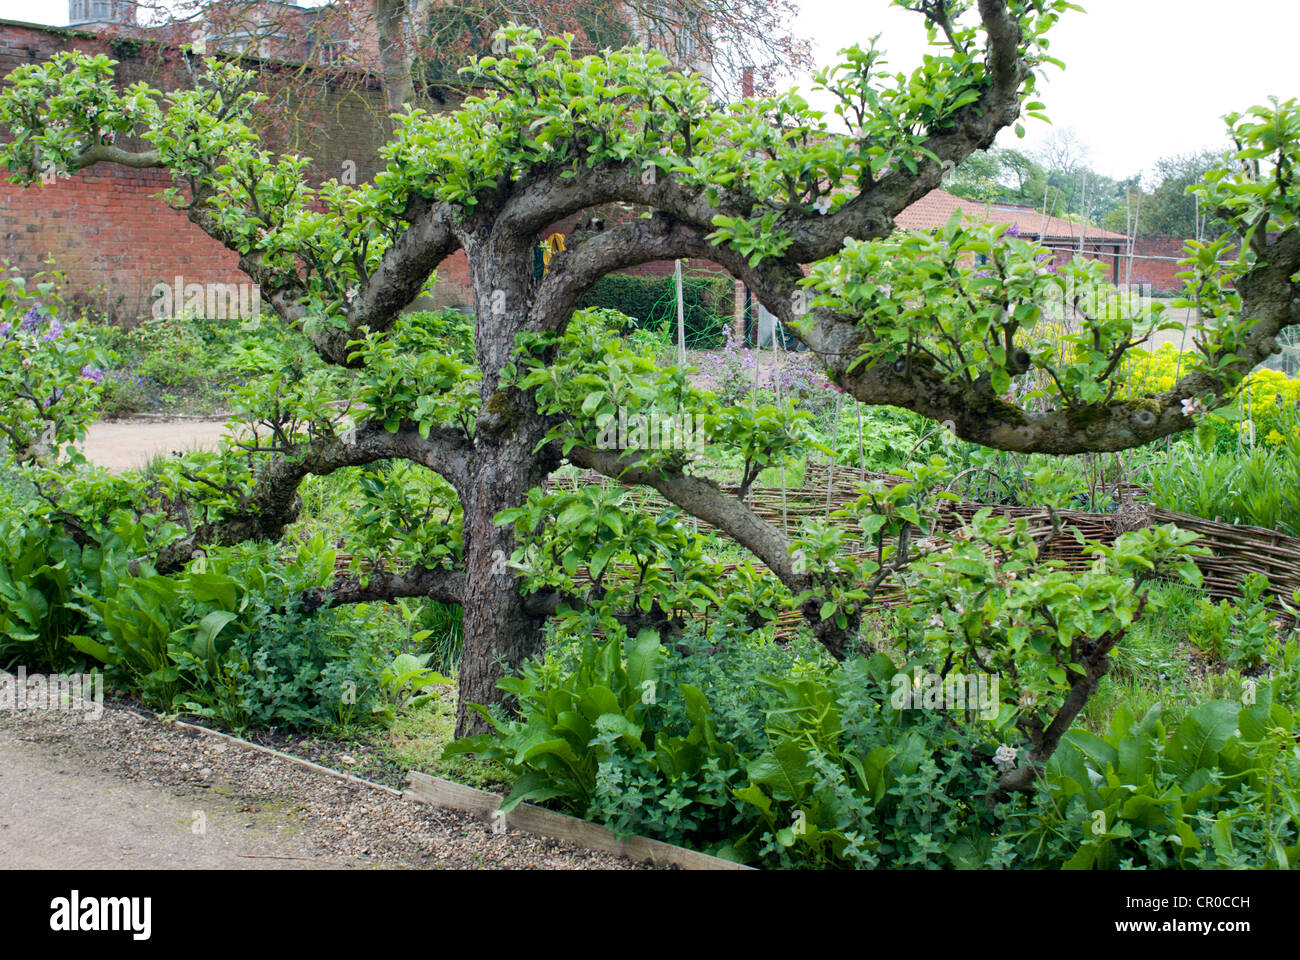 Espalier Apple Tree Growing In A Country Walled Garden   Stock Image